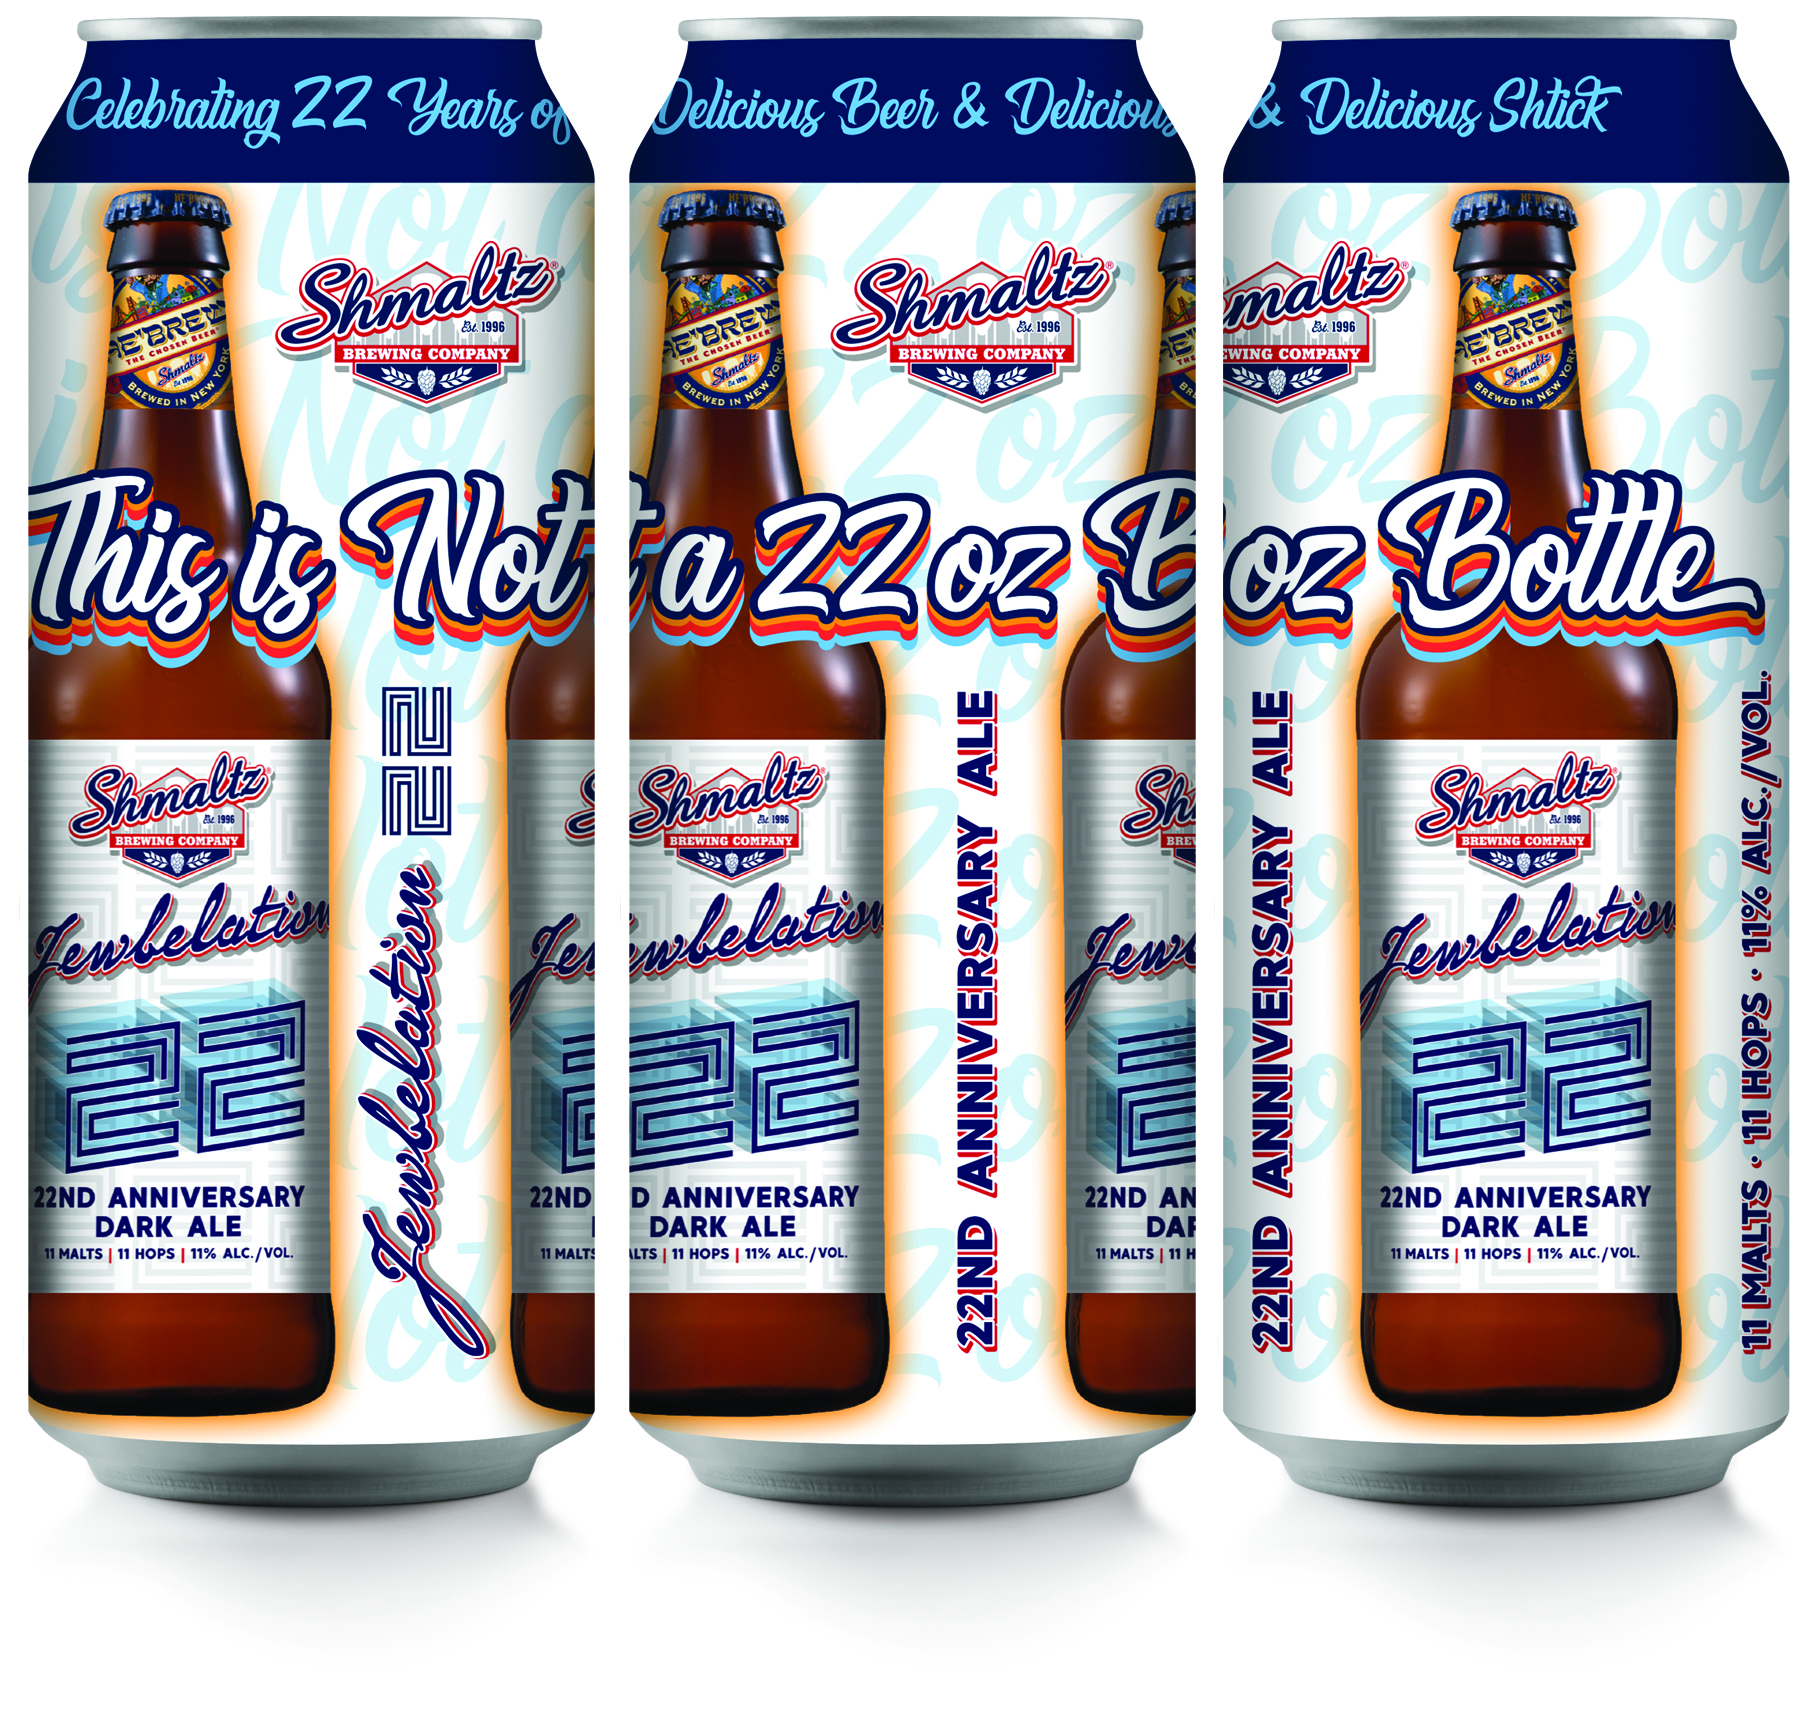 shmaltz-chanukah-beer-XL-BLOG1118.jpg